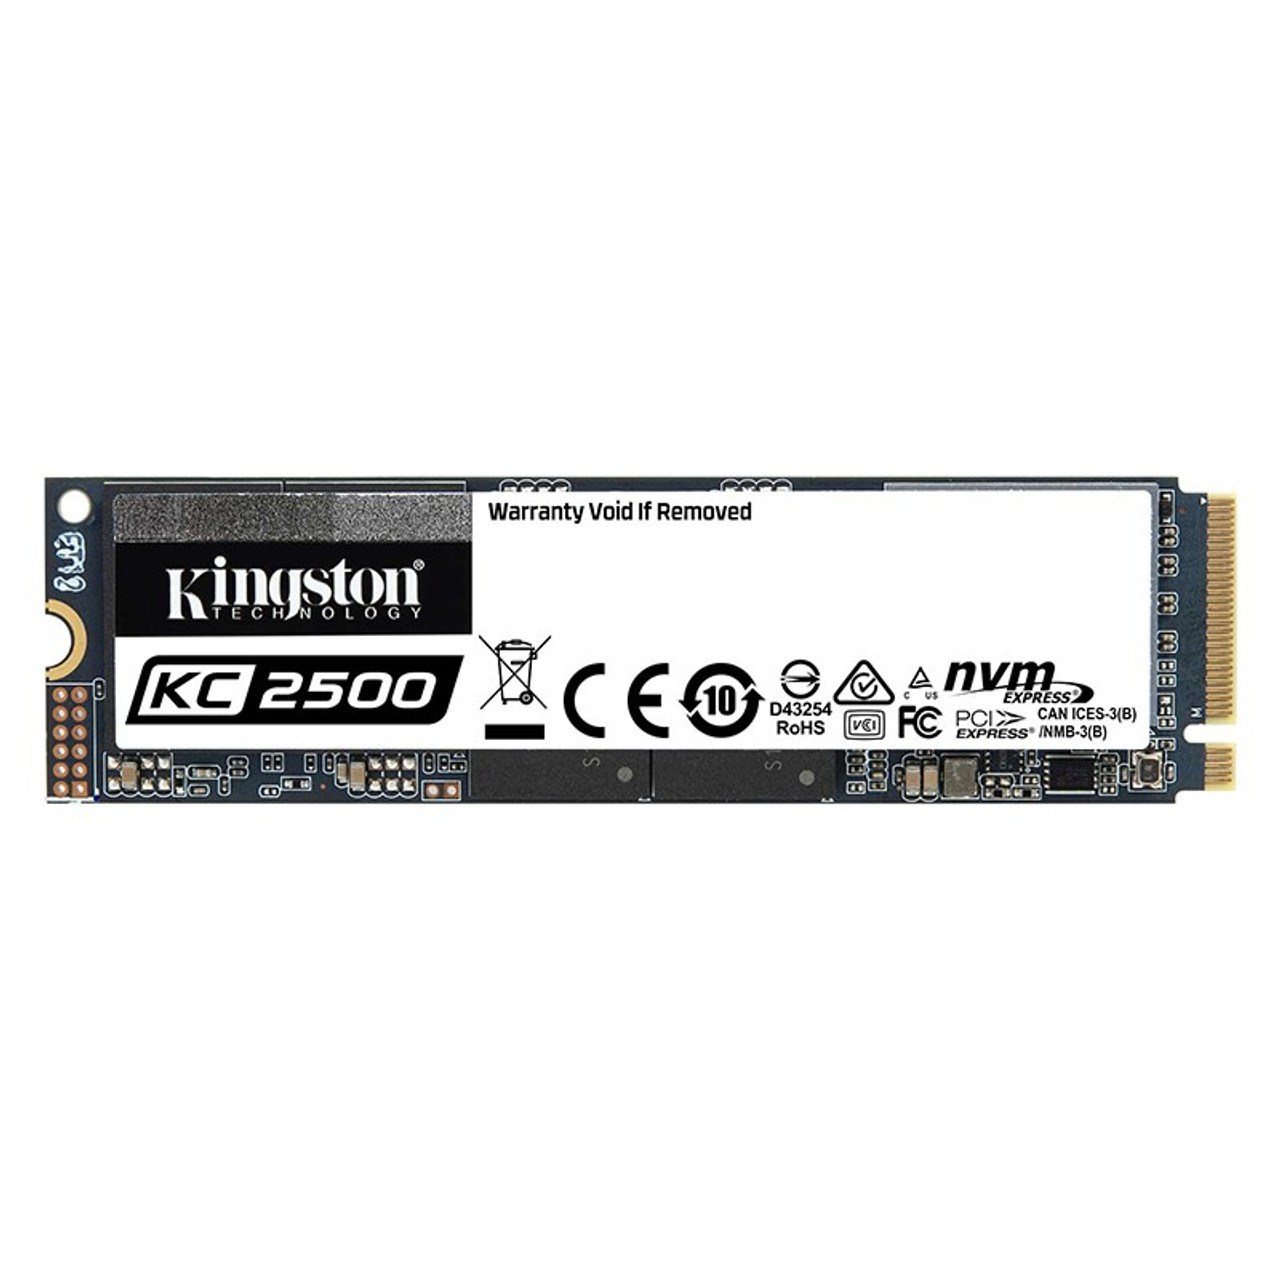 Image for Kingston KC2500 500GB M.2 (2280) PCIe NVMe SSD CX Computer Superstore